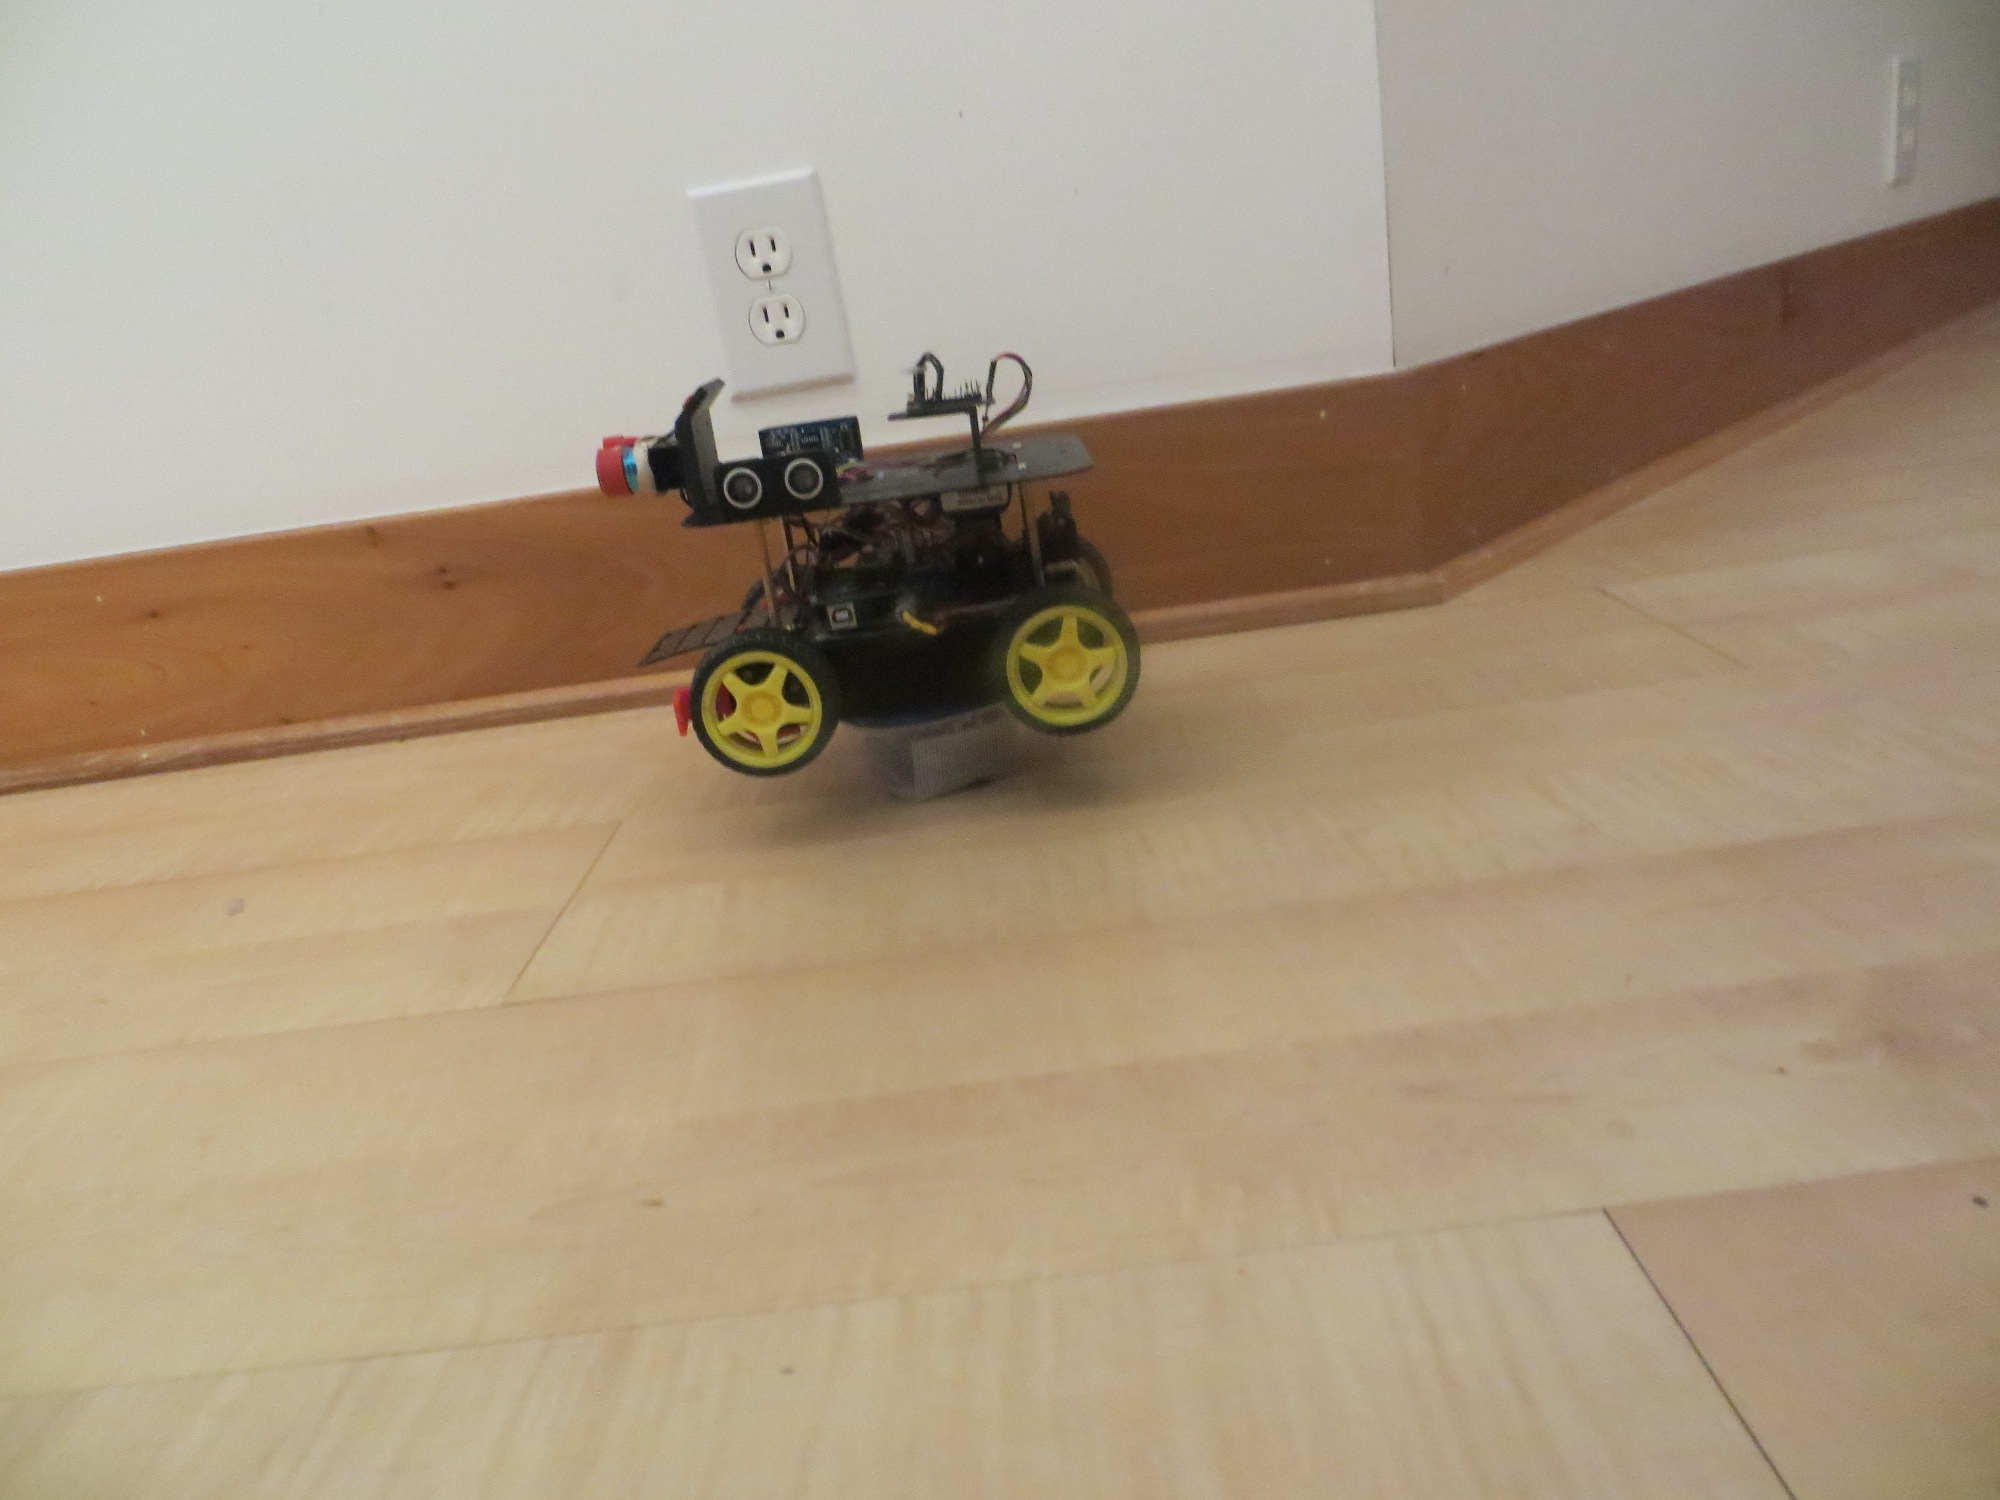 Wall-E2 on a pedestal so motors can run normally without moving the robot